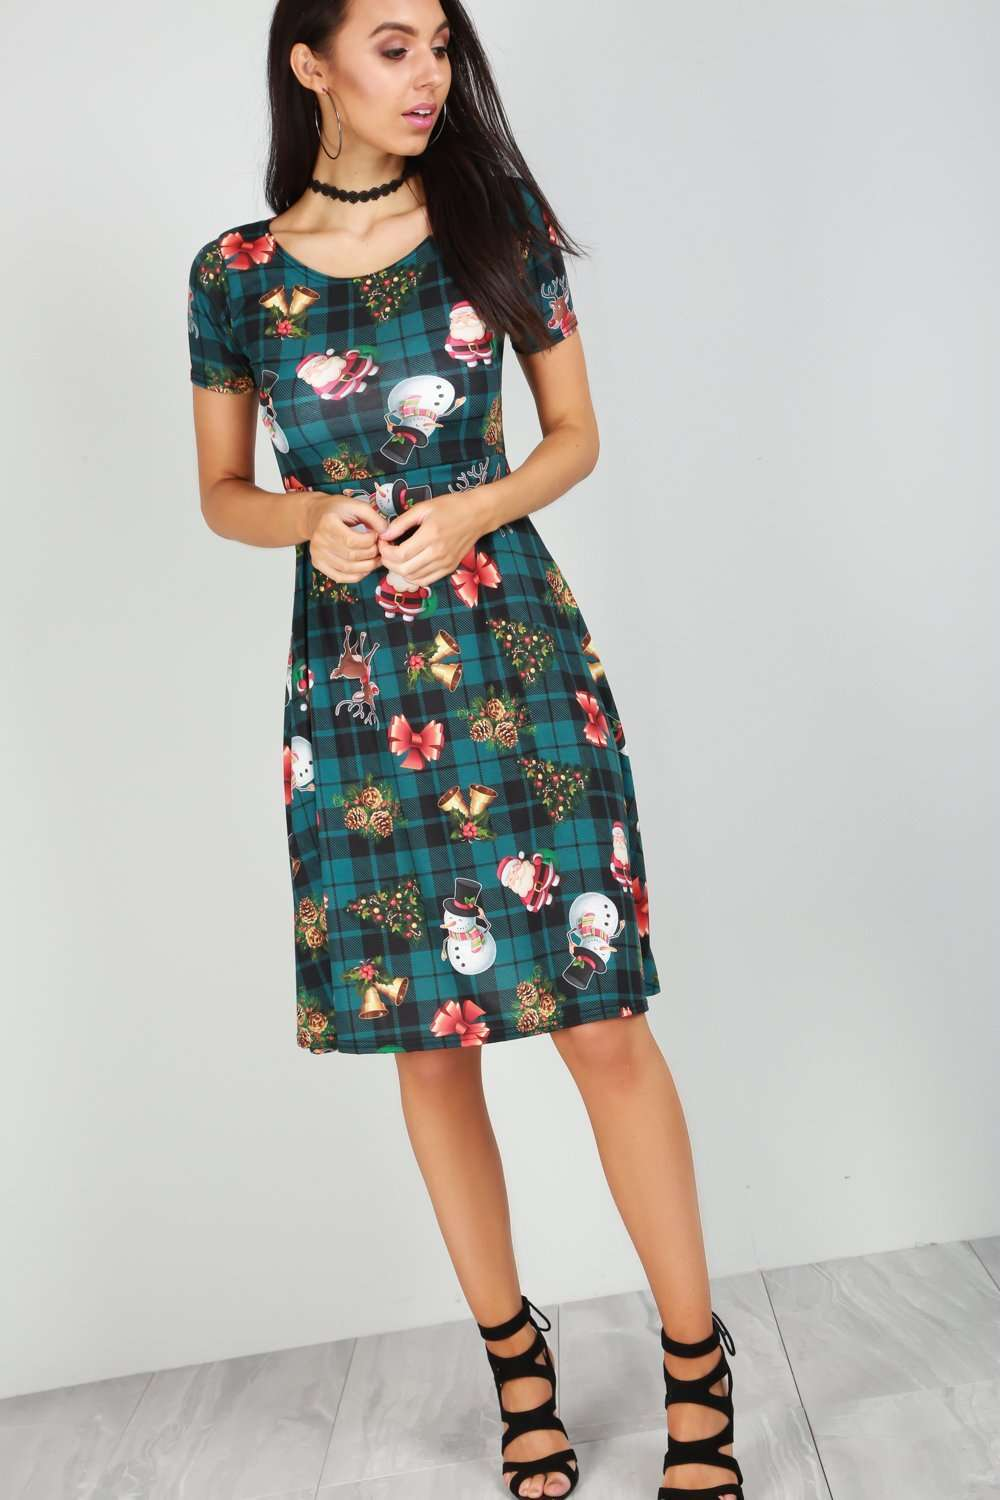 Snowman Christmas Print Cap Sleeve Midi Swing Dress - bejealous-com